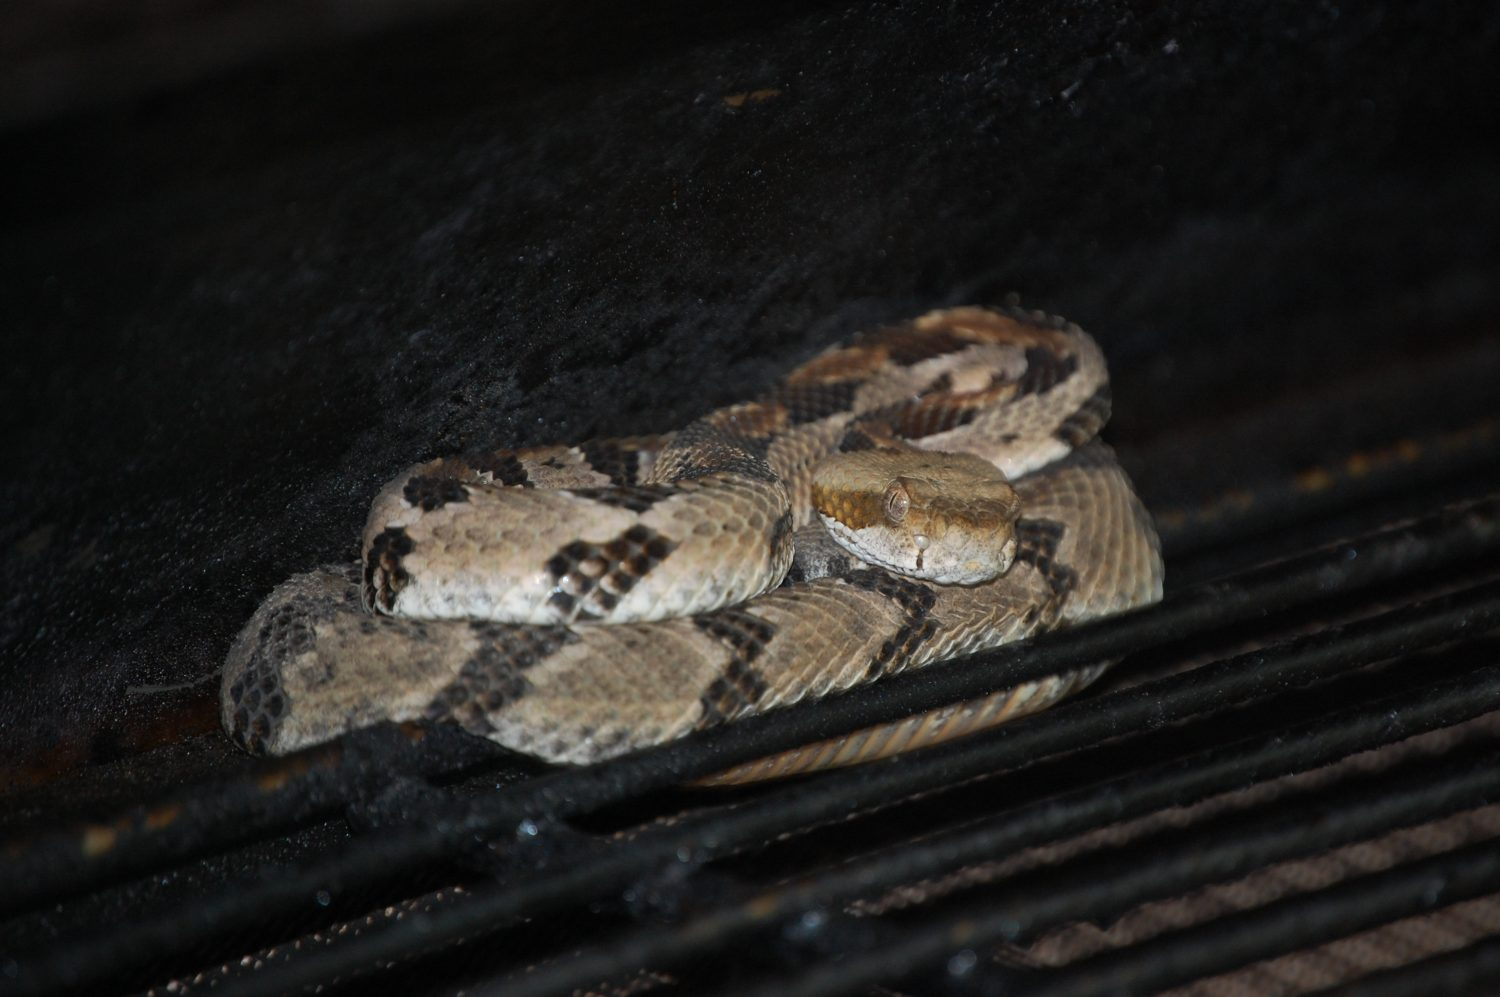 The+young+rattlesnake+found+curled+up+on+the+warming+shelf+of+Rand+and+Marci+Ziegler%27s+outdoor+grill.